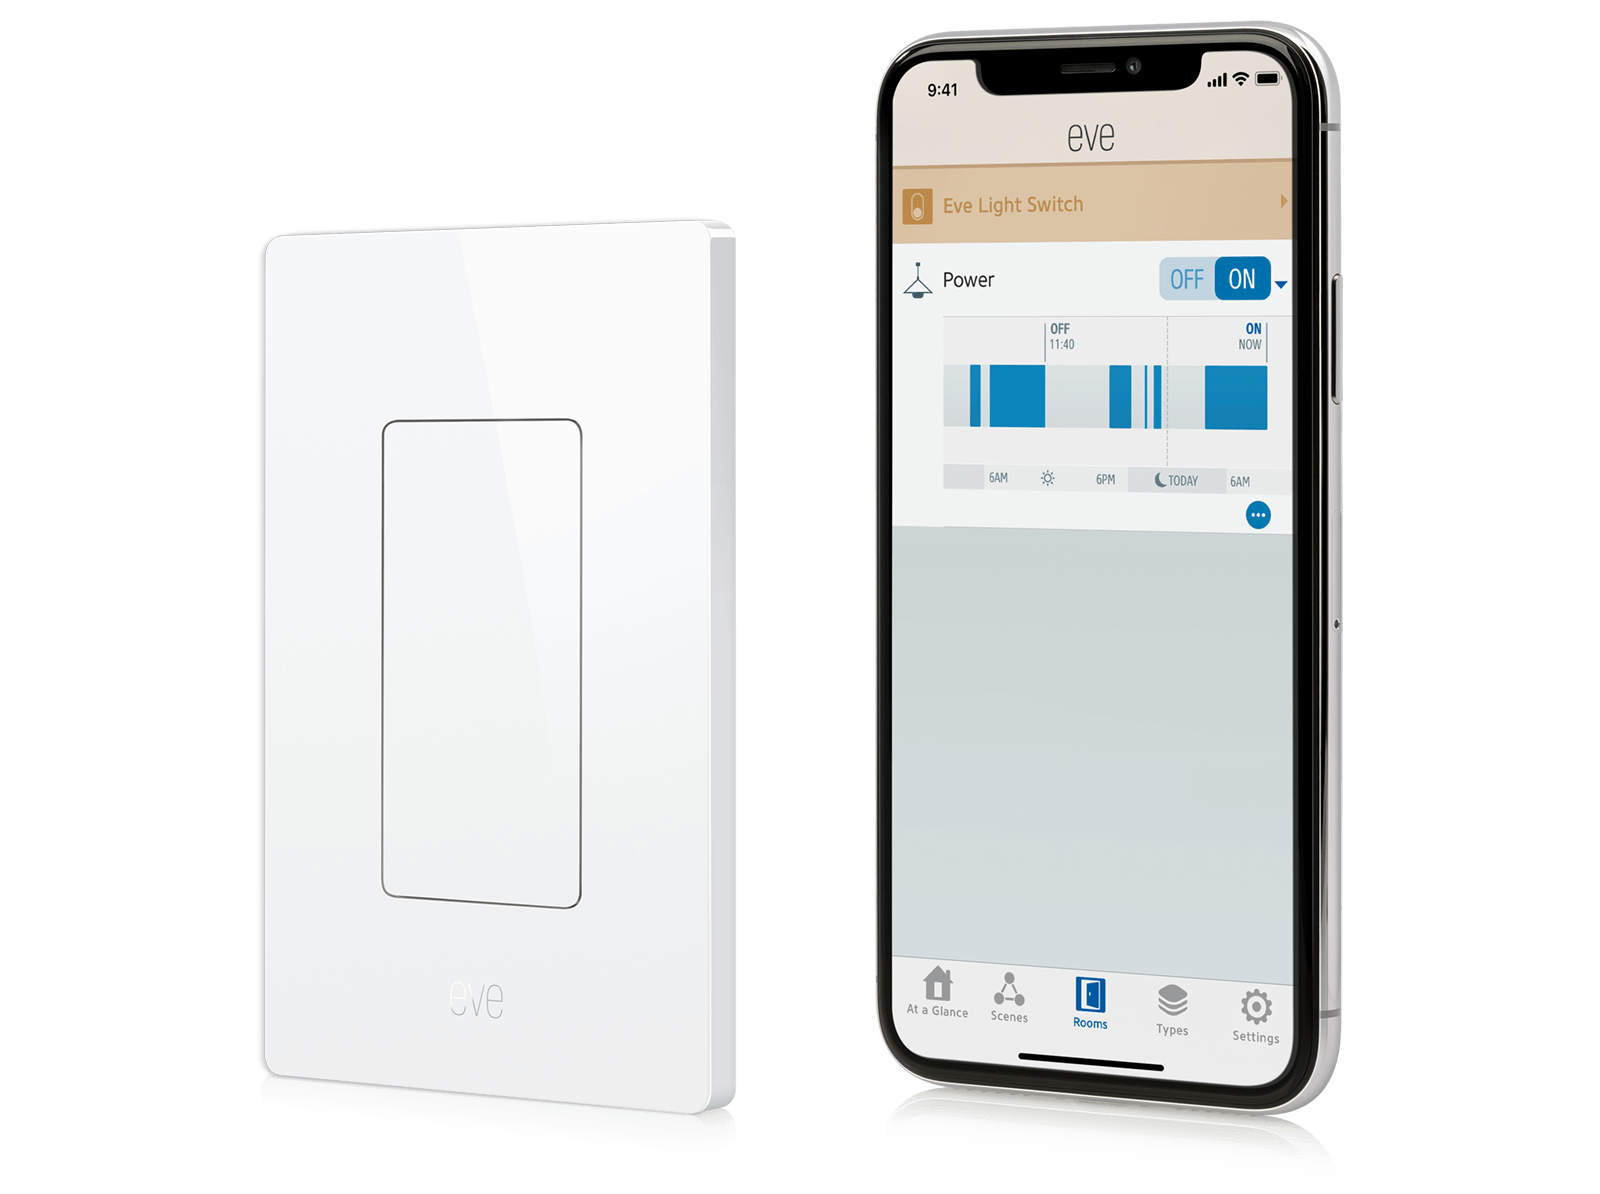 Eve Light Switch Smart Switches Require No Wiring Gizmodo Australia And To See Concise Records Gain Insights Enjoy Full Control Of Your Connected Home Look Further Than The App